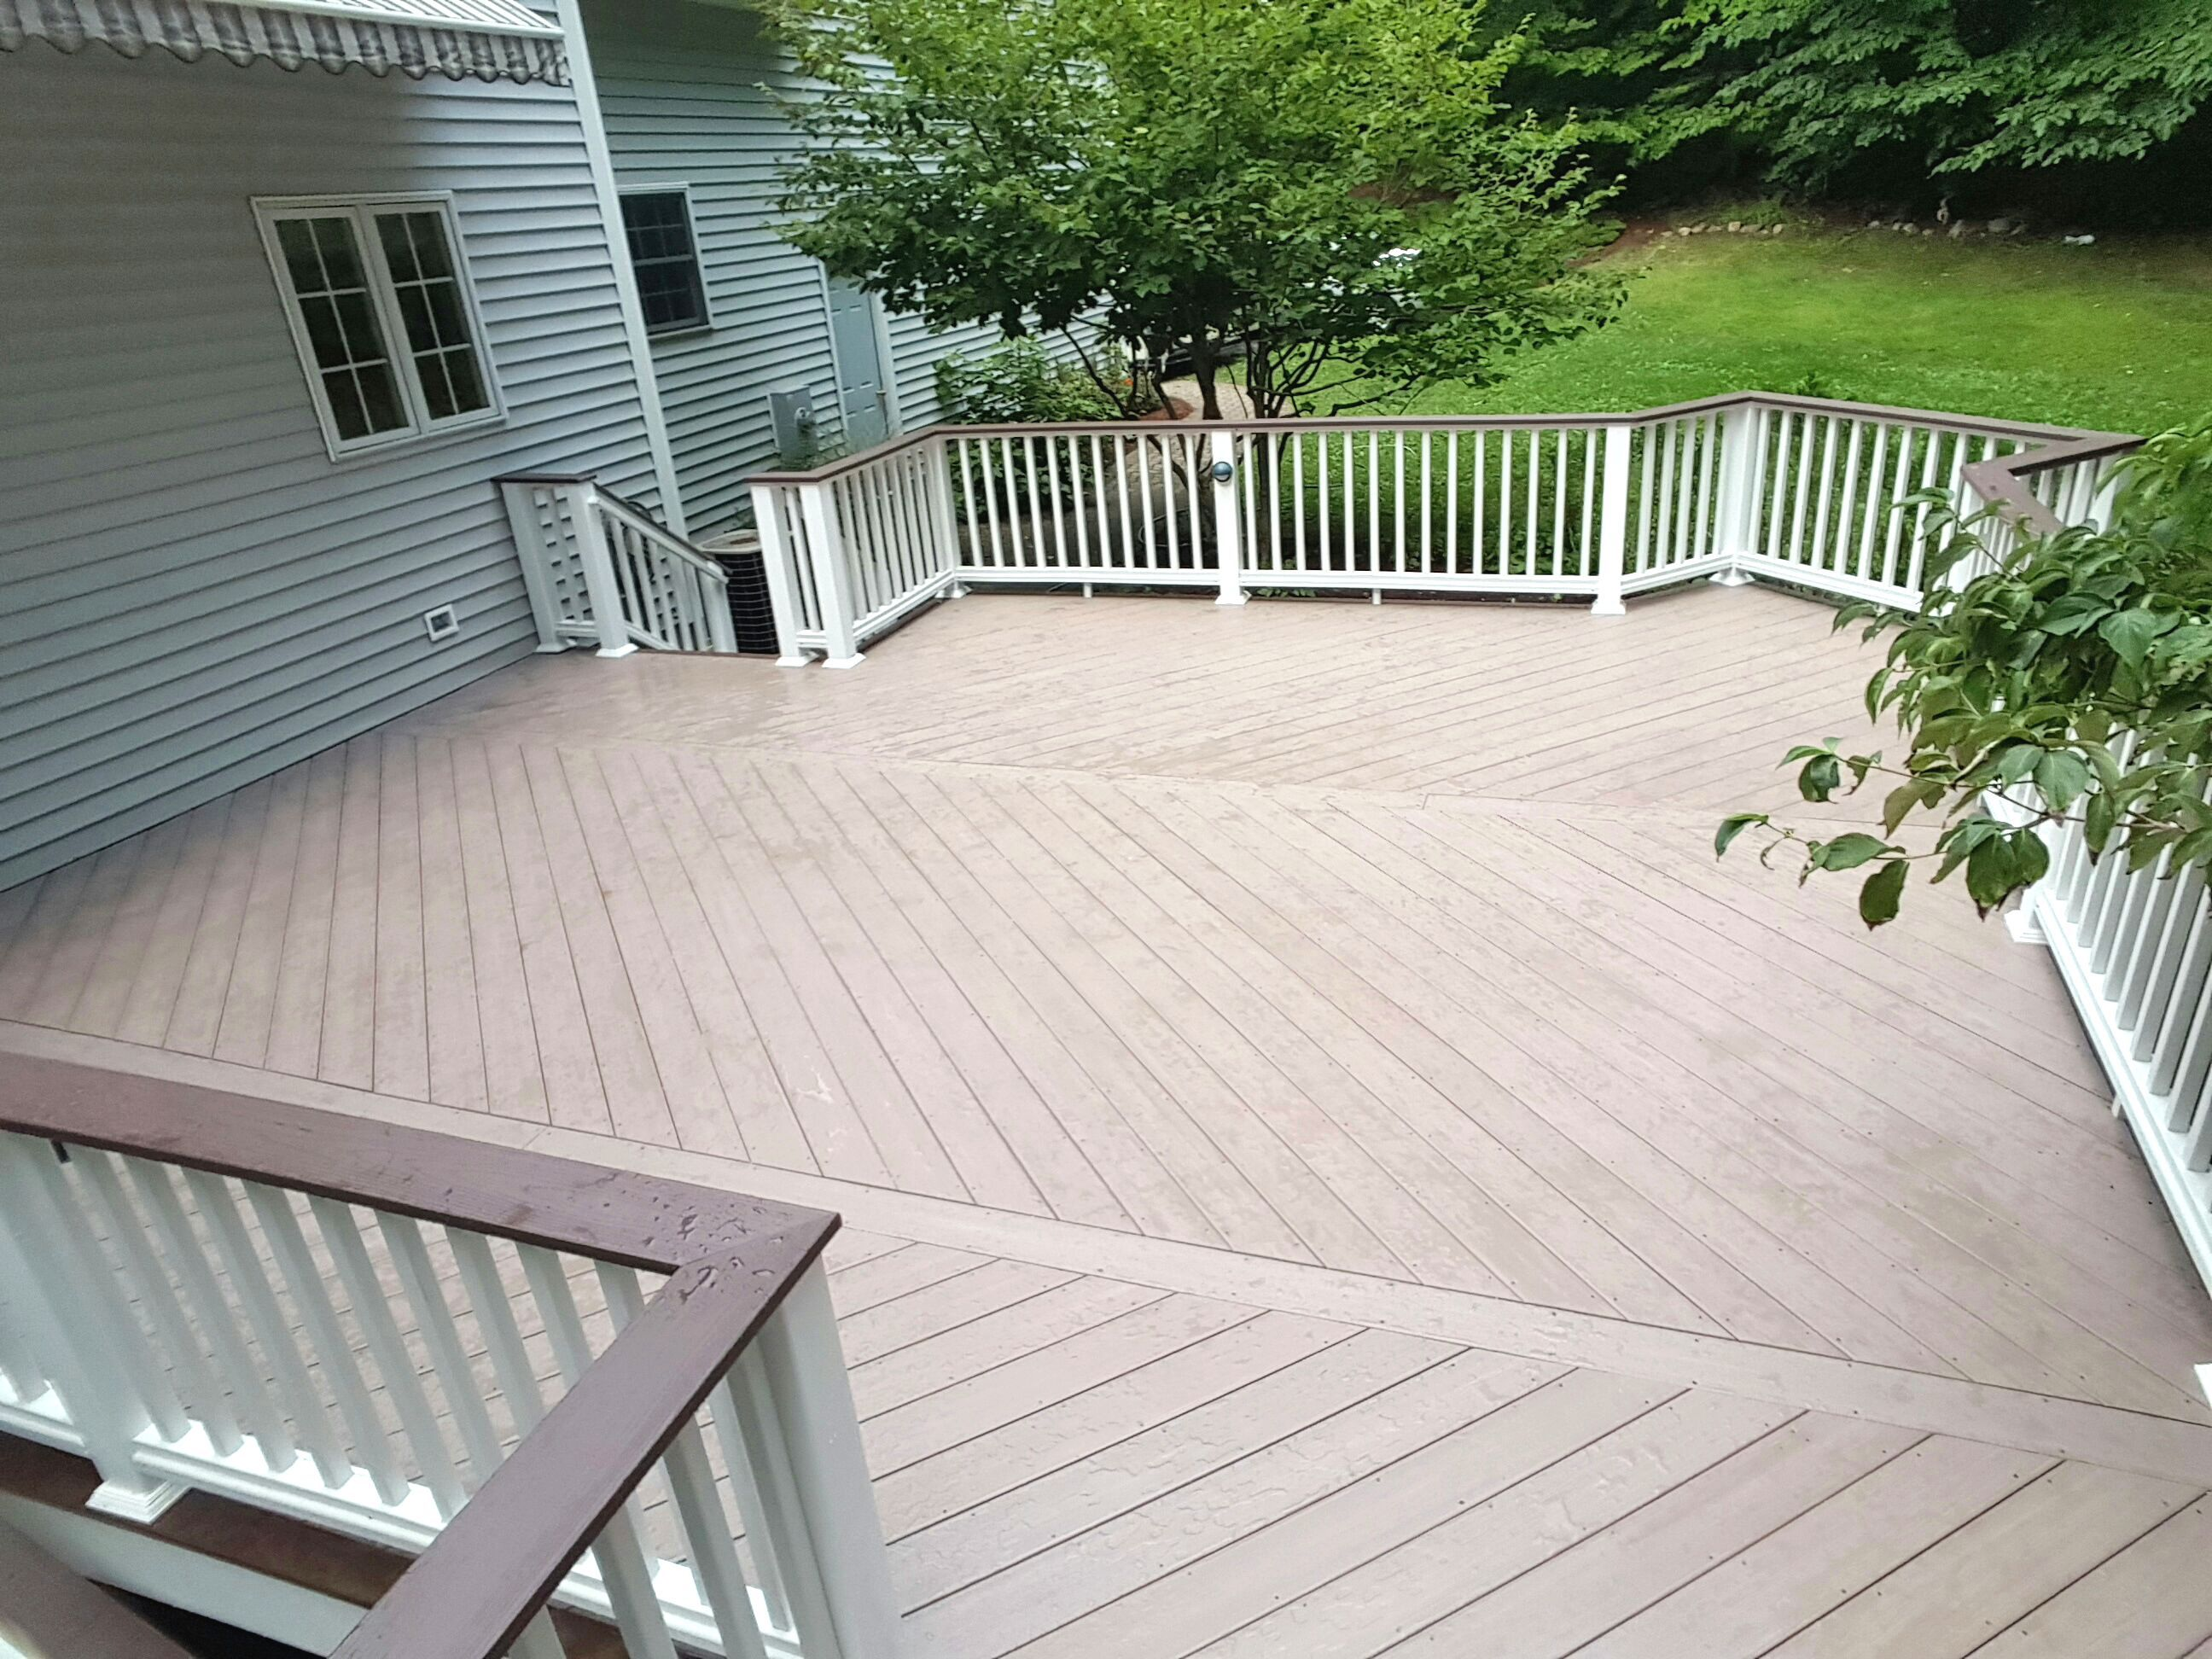 Deck Pictures Custom Azek Deck Morado And Acacia Decking With White Soldid Vinyl Deck Deck Pictures Azek Decking